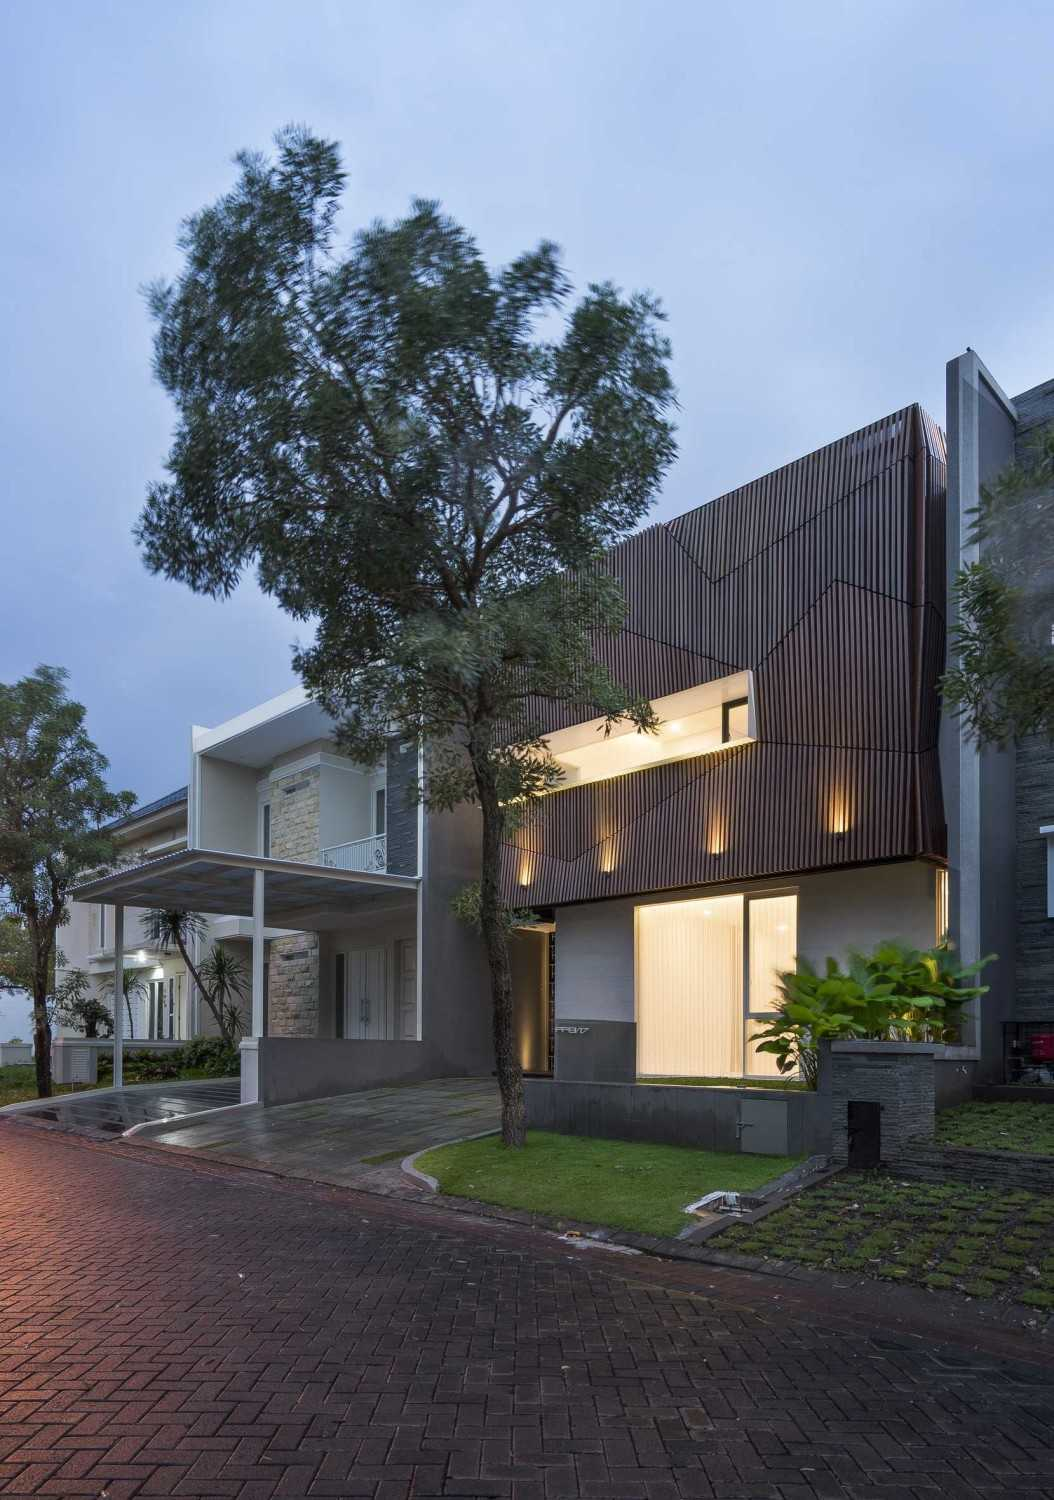 """Simple Projects Architecture """"s"""" House Pakuwon Indah, Surabaya - Indonesia Pakuwon Indah, Surabaya - Indonesia Side View  32967"""